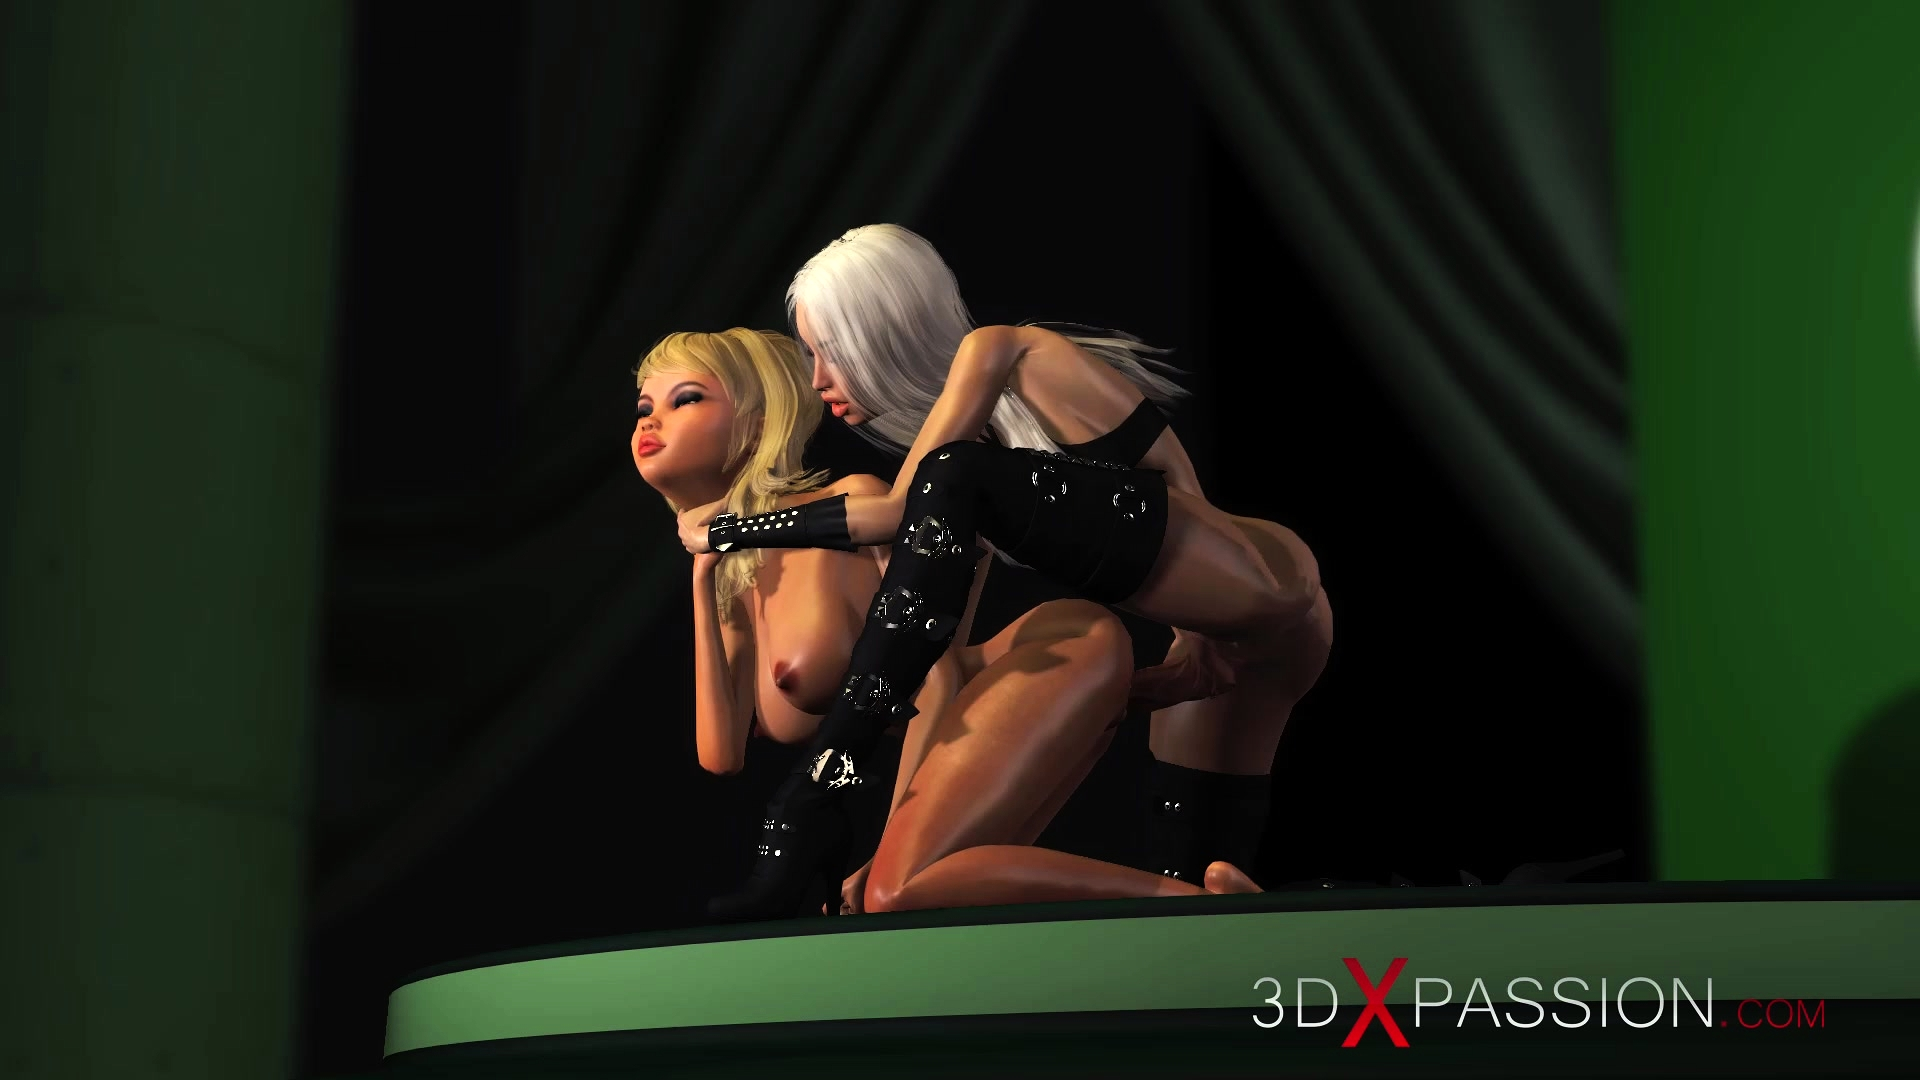 3D Shemale Videos 3d hot active shemale fucks horny girlfriend on model podium